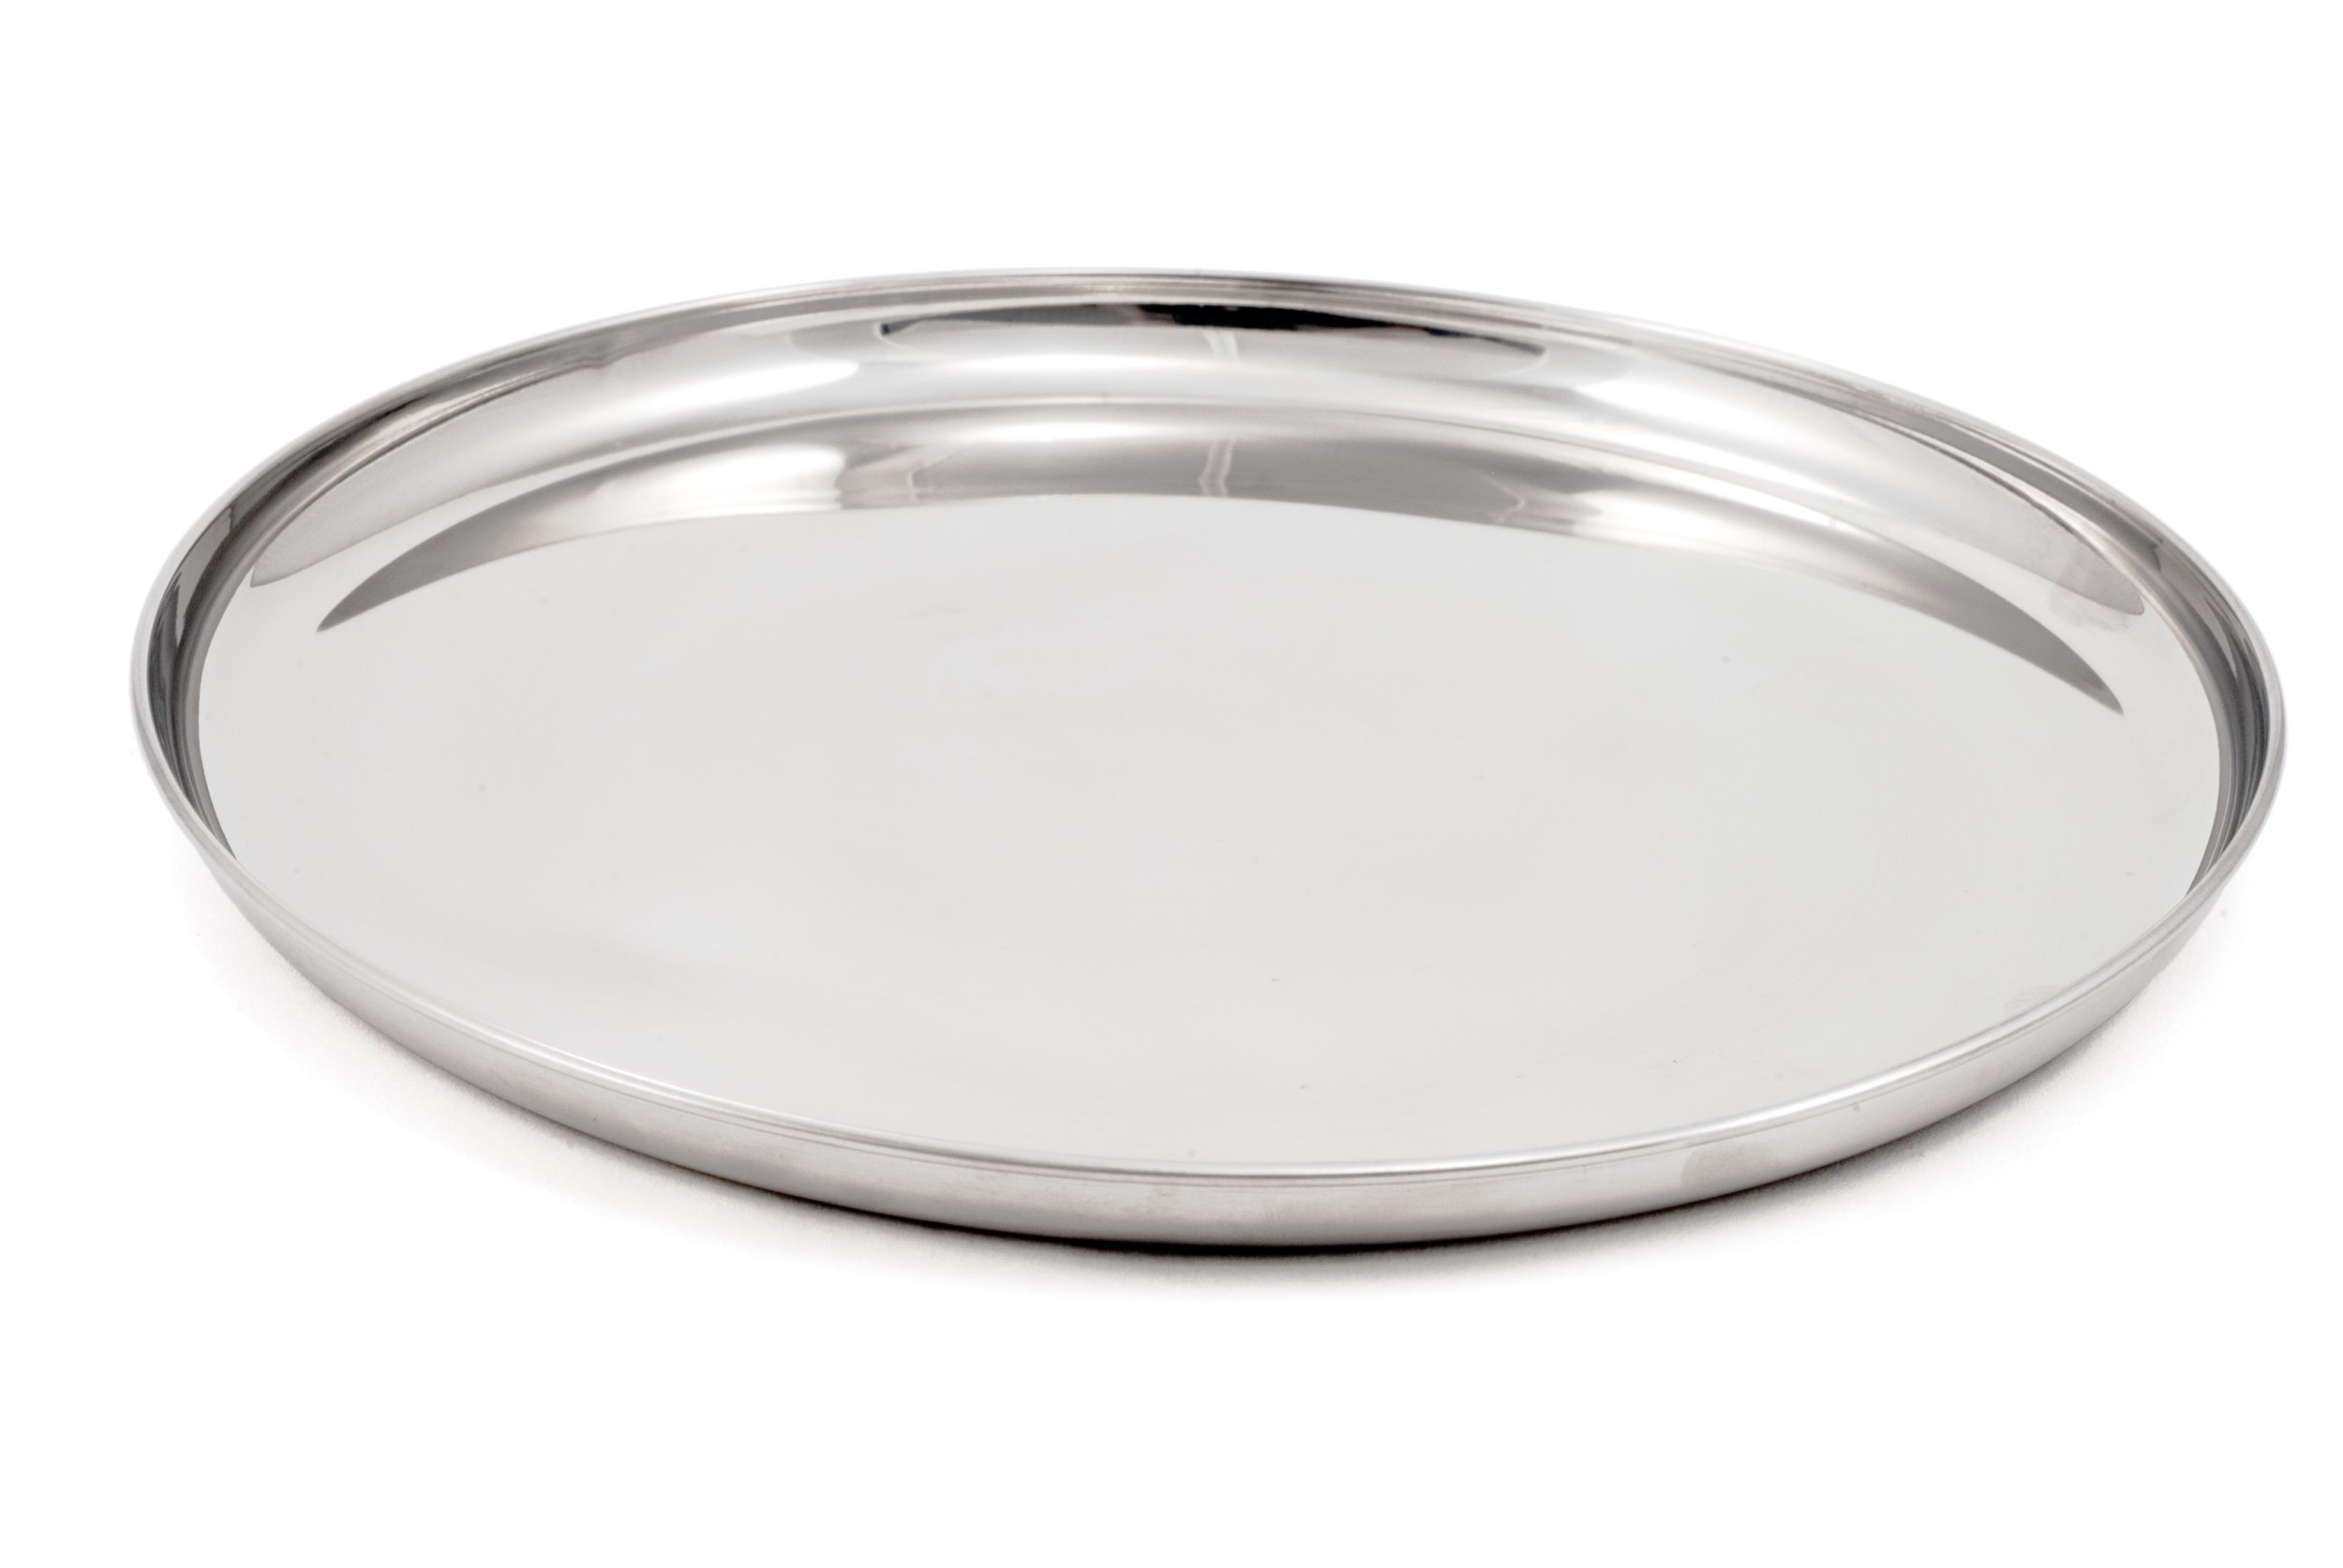 GSI Outdoors Glacier Stainless Steel Plate, Single